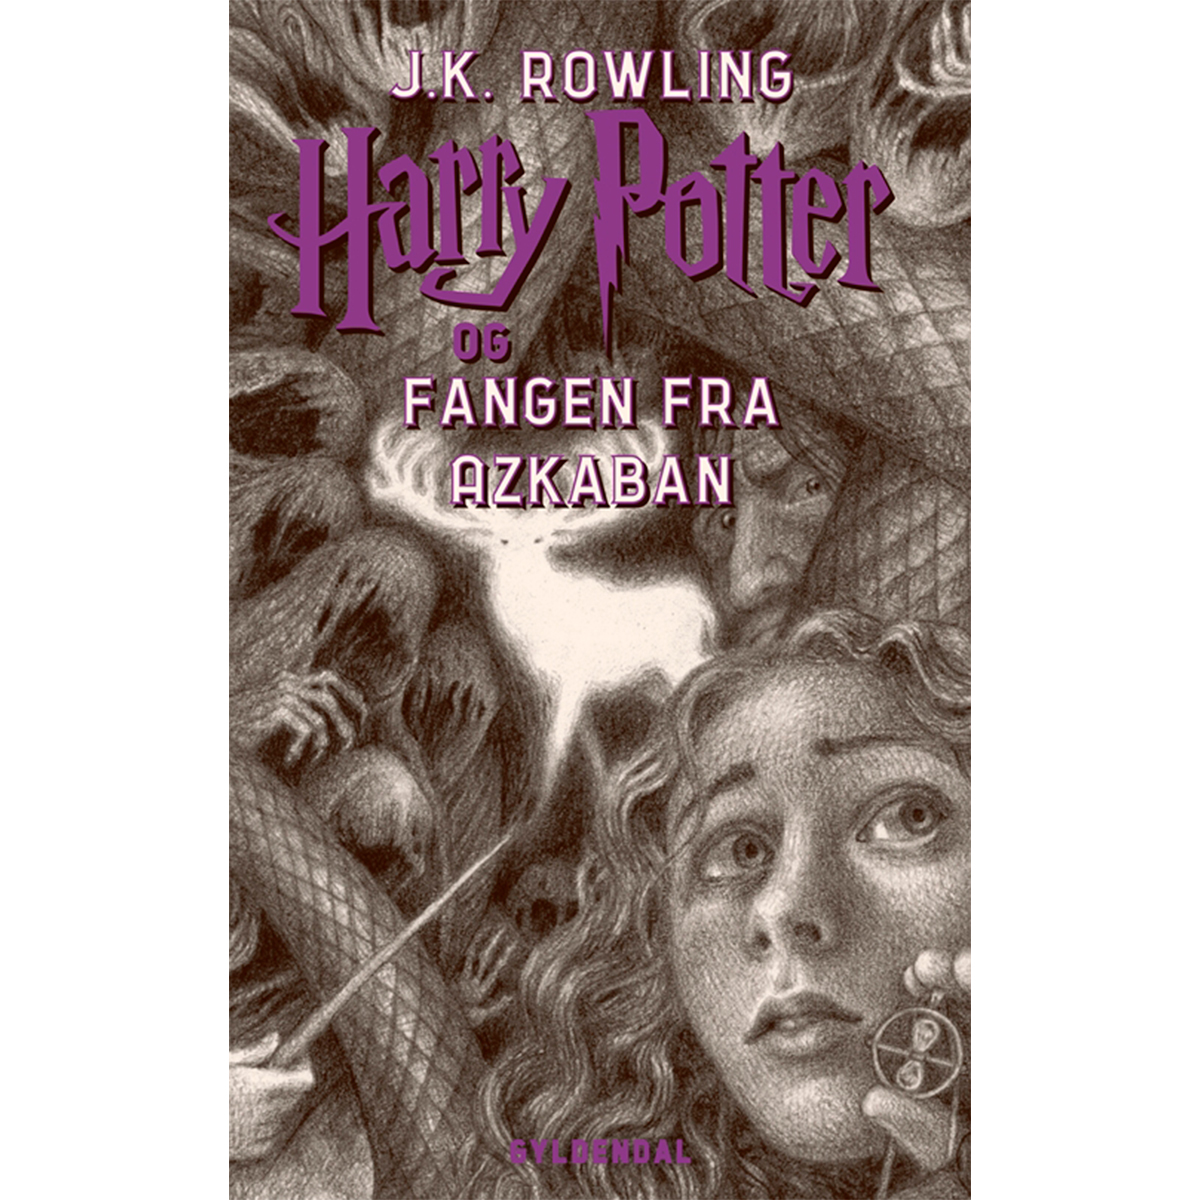 Harry Potter og fangen fra Azkaban - Harry Potter 3 - Hæftet